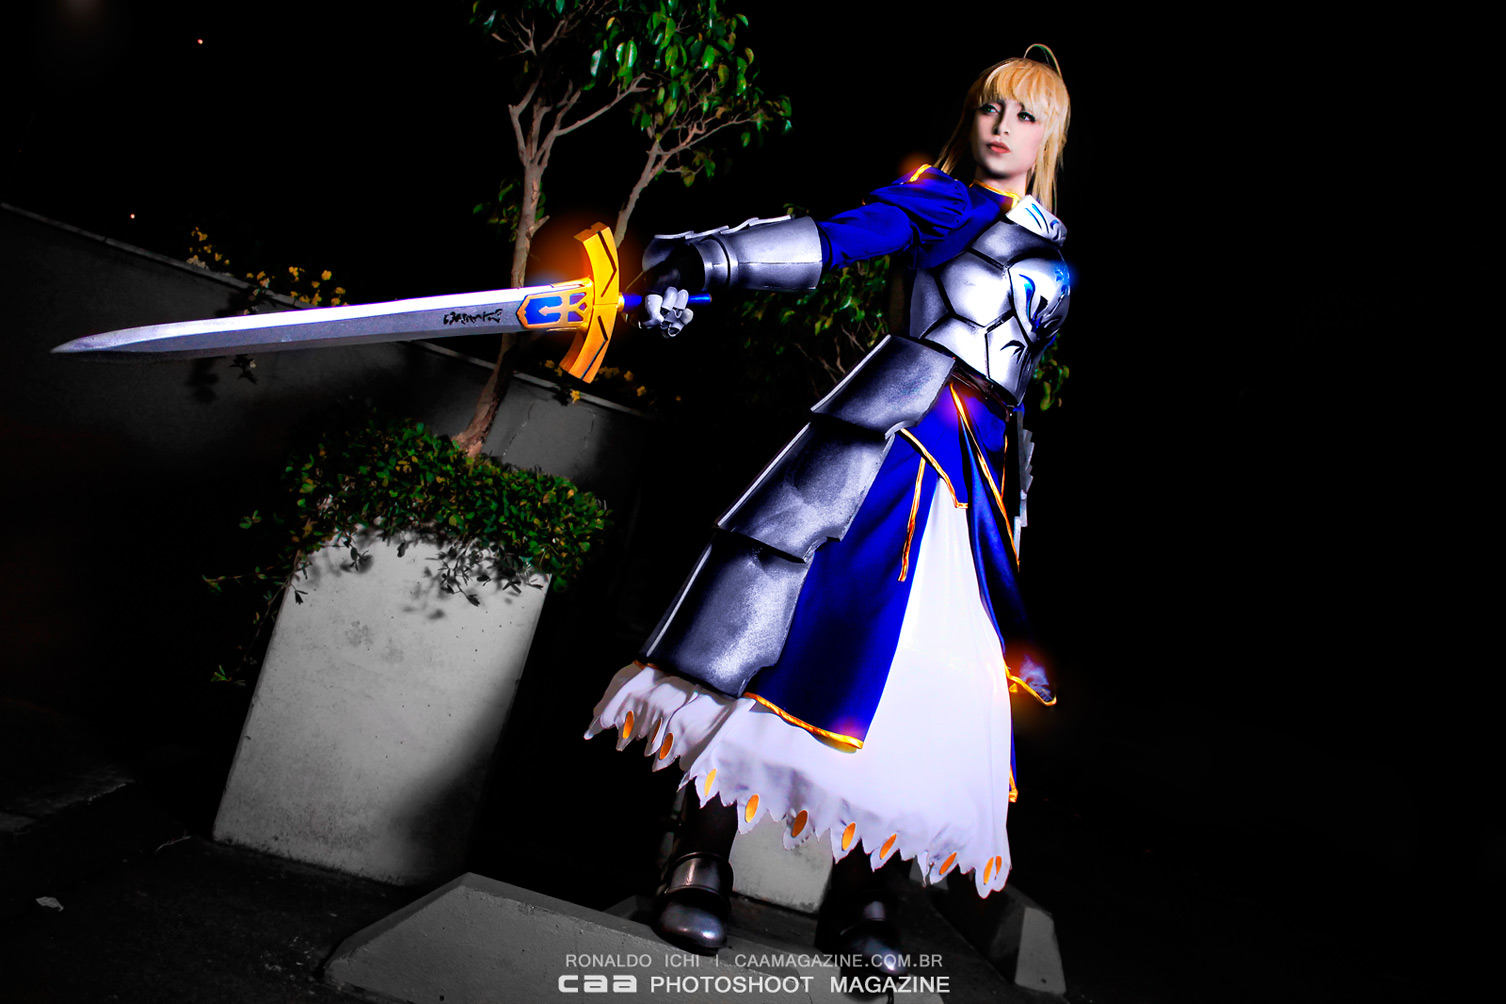 Saber z Fate/stay night